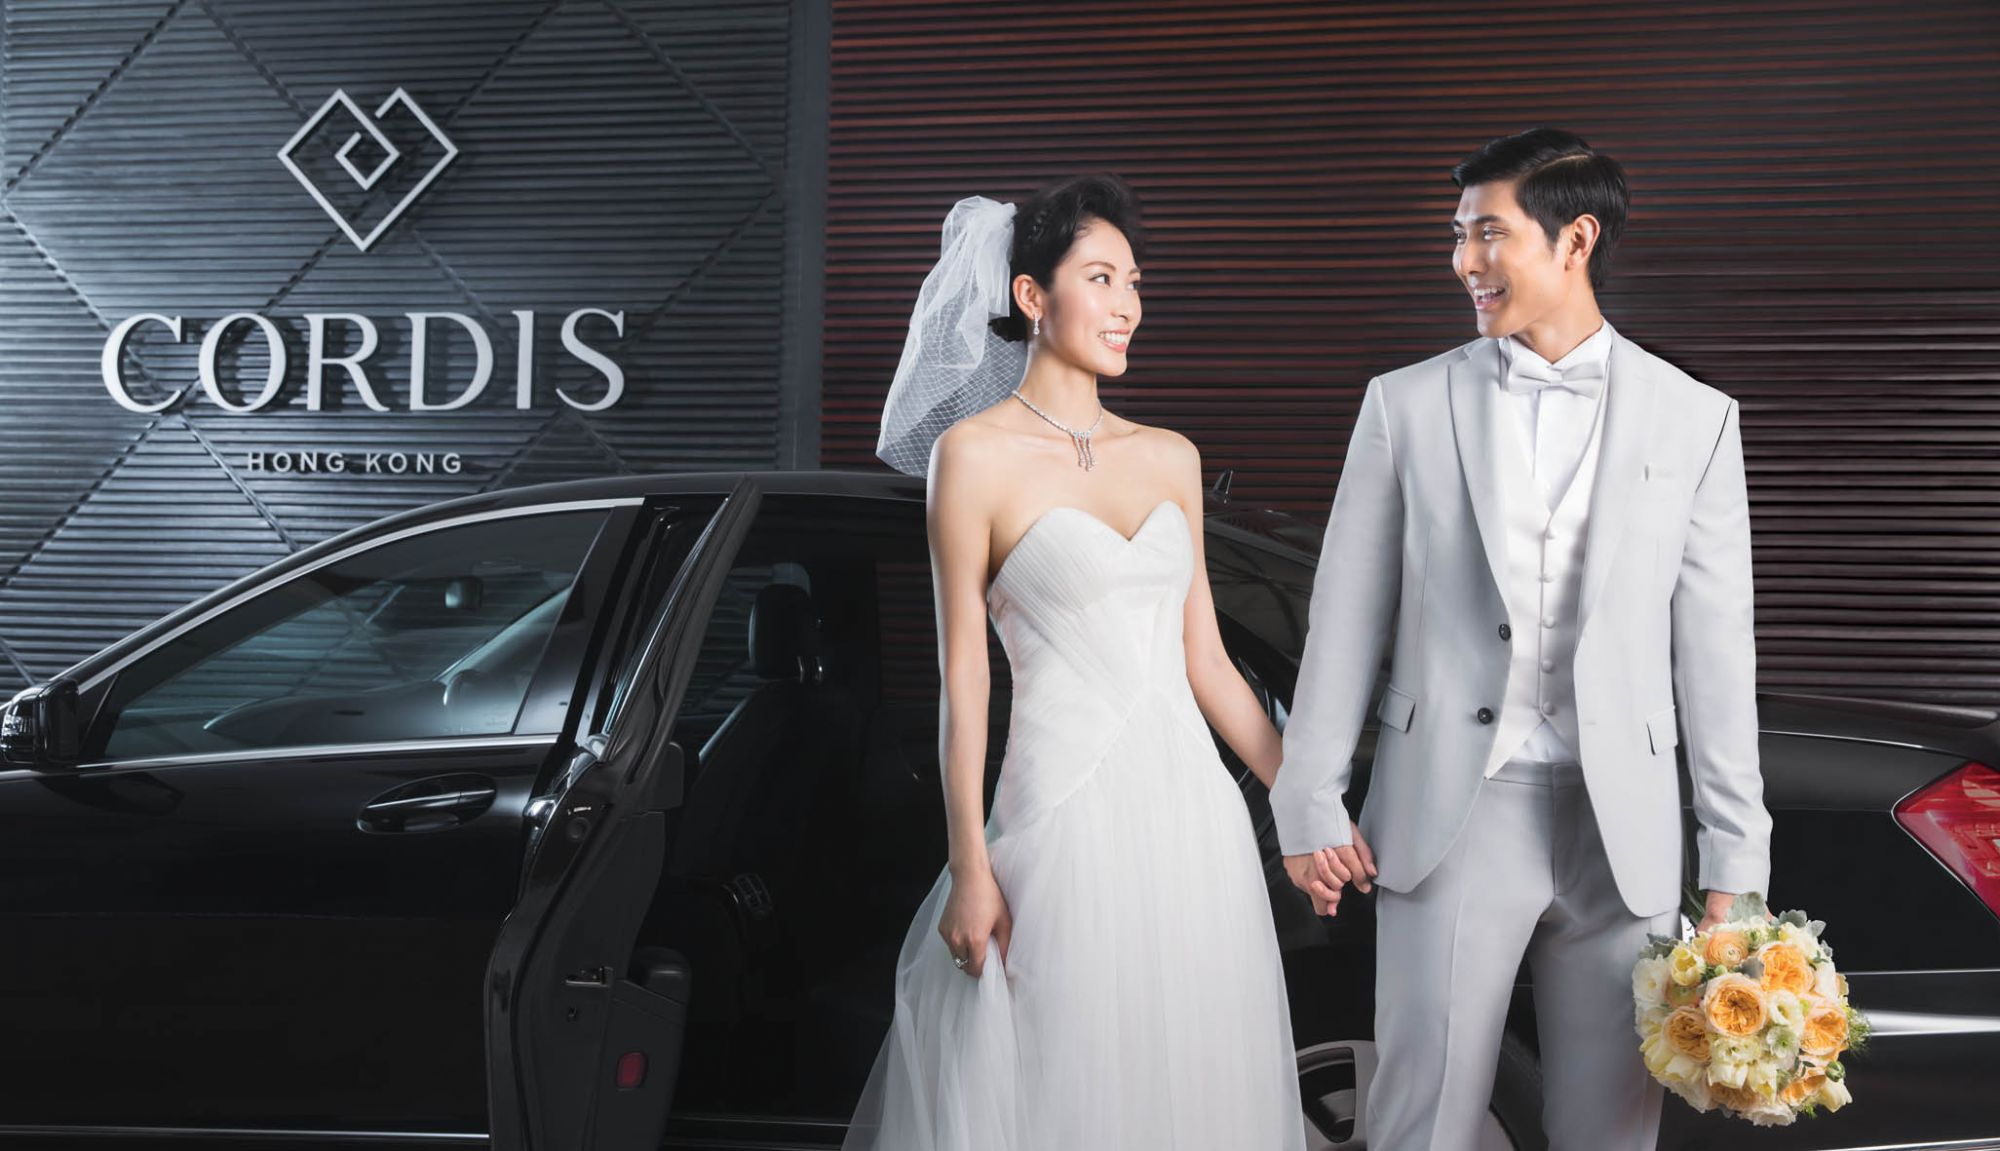 Dazzle At Your Wedding With Cordis, Hong Kong And Swarovski